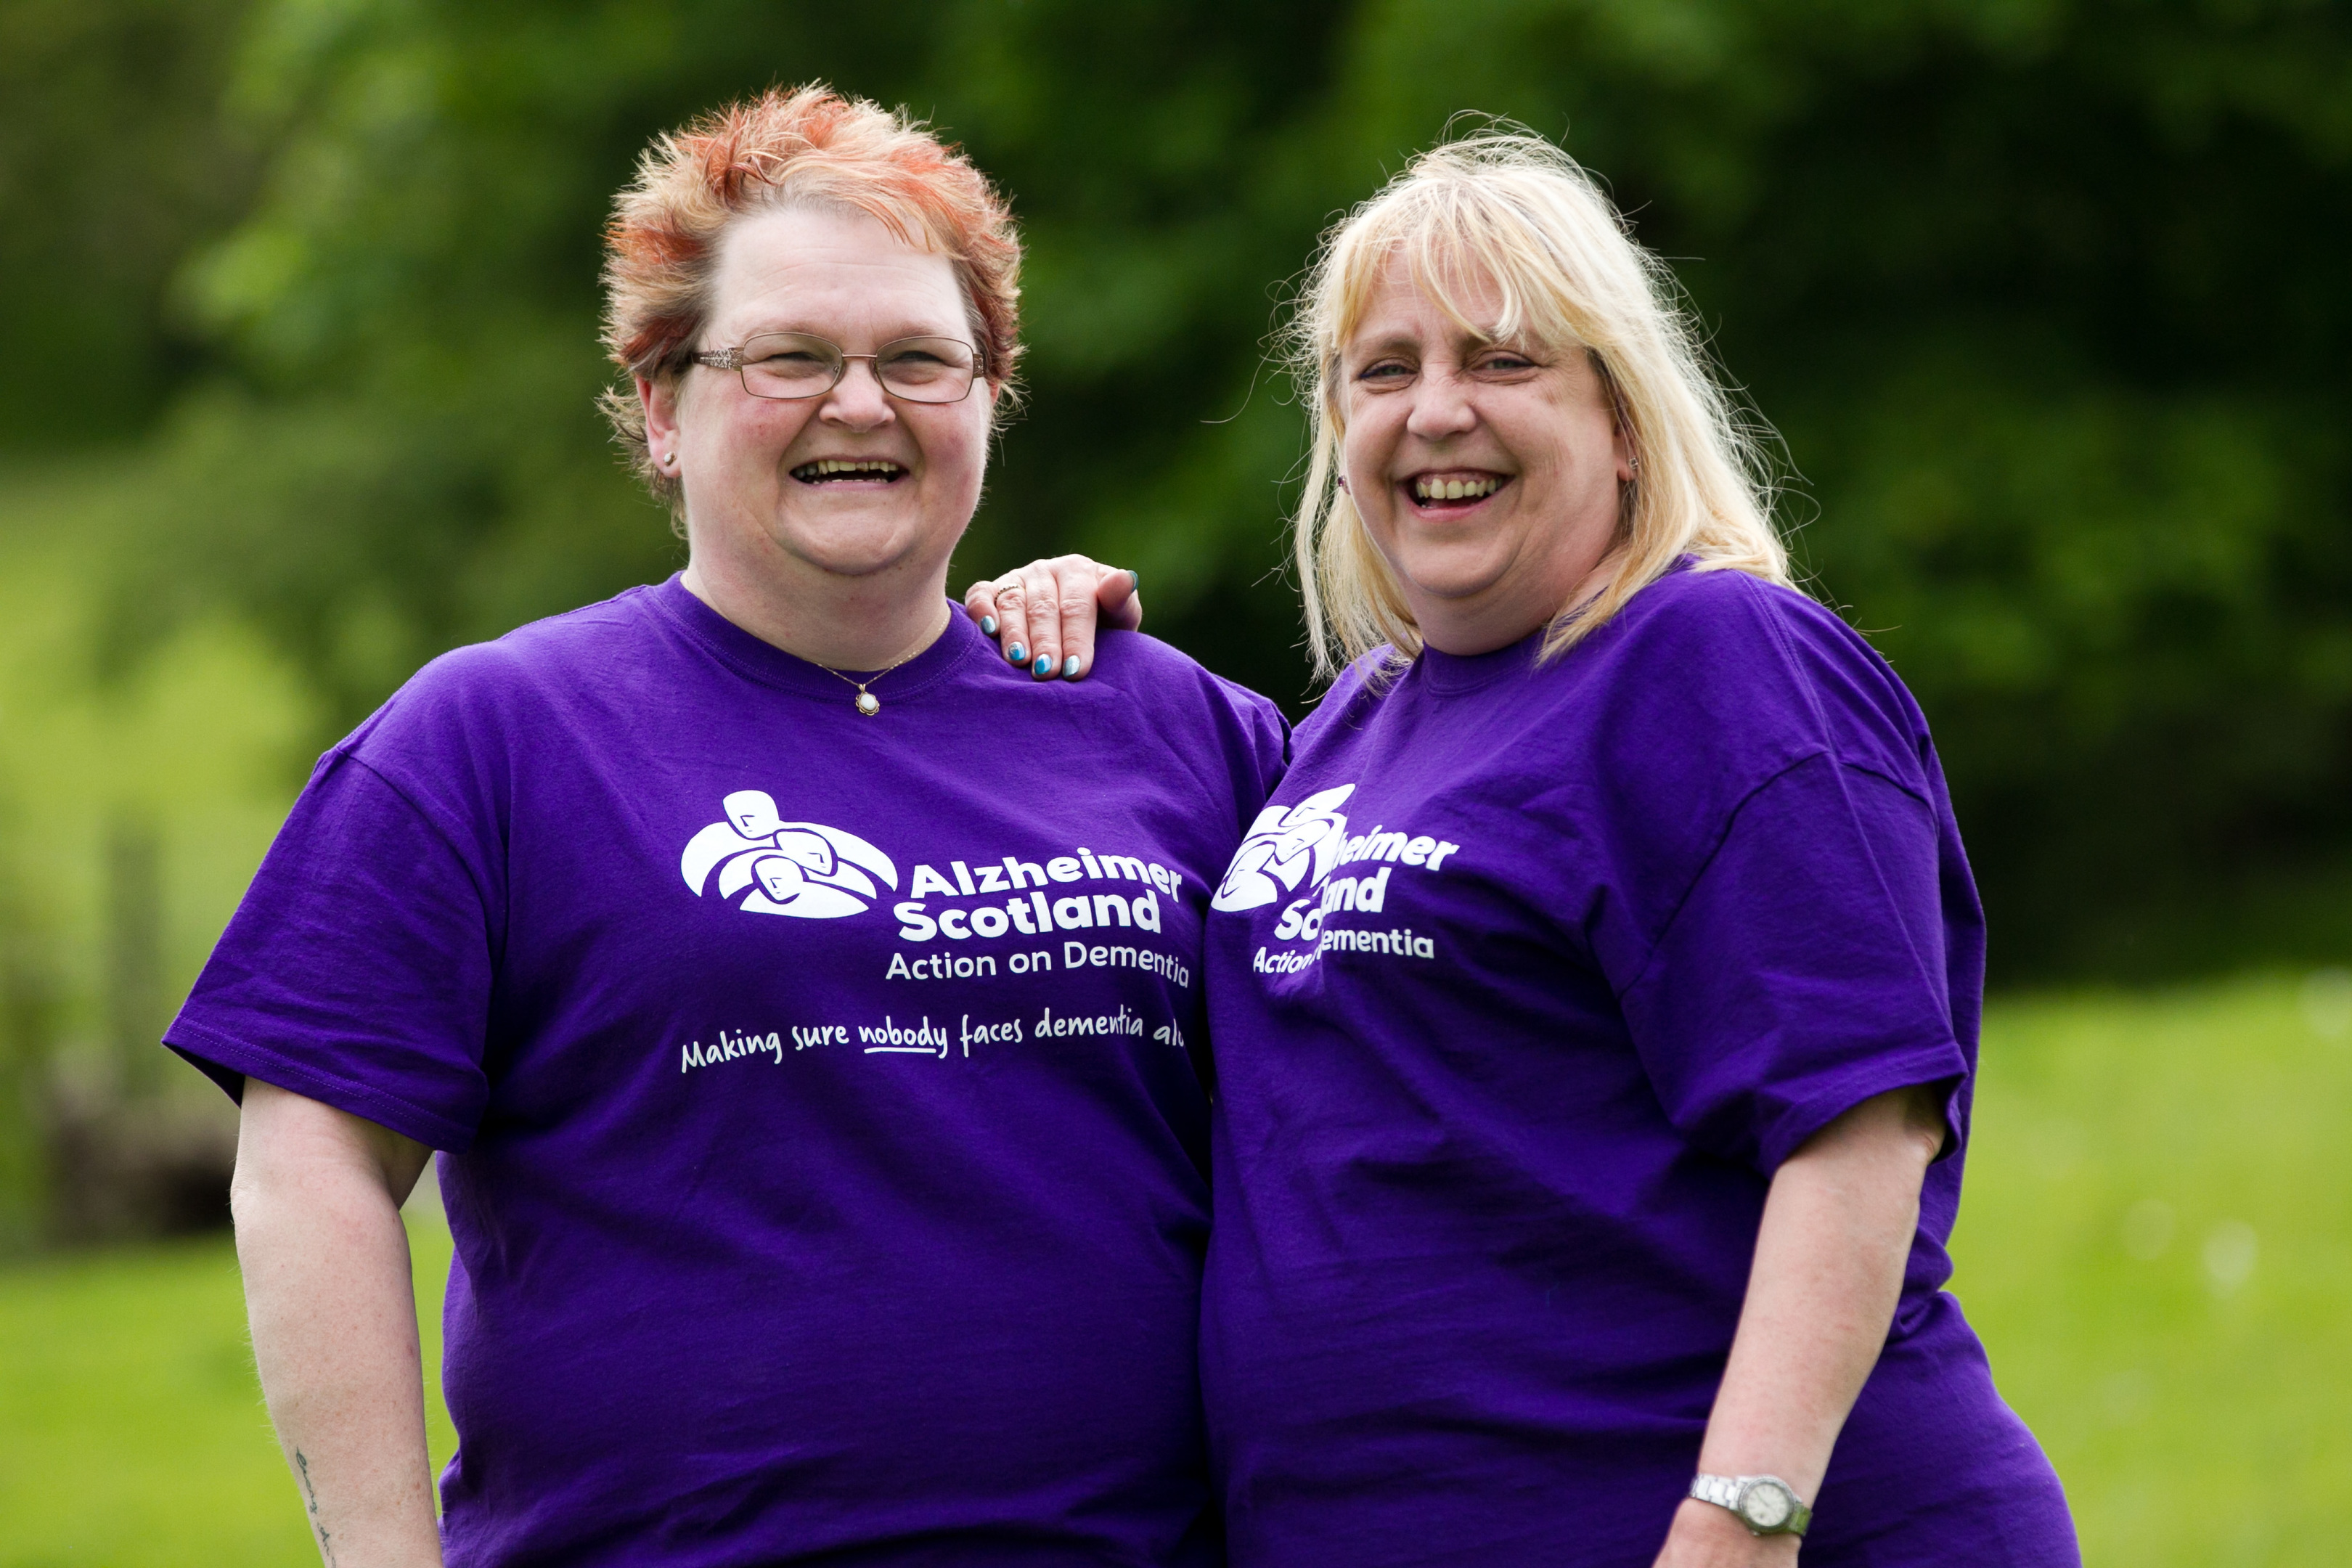 Margaret McLaren (left) and sister Ann are going to be taking part in the Memory Walk, raising money for Alzheimer's Scotland, and in memory of their mother Mary Baxter (Andrew Cawley/ DC Thomson)